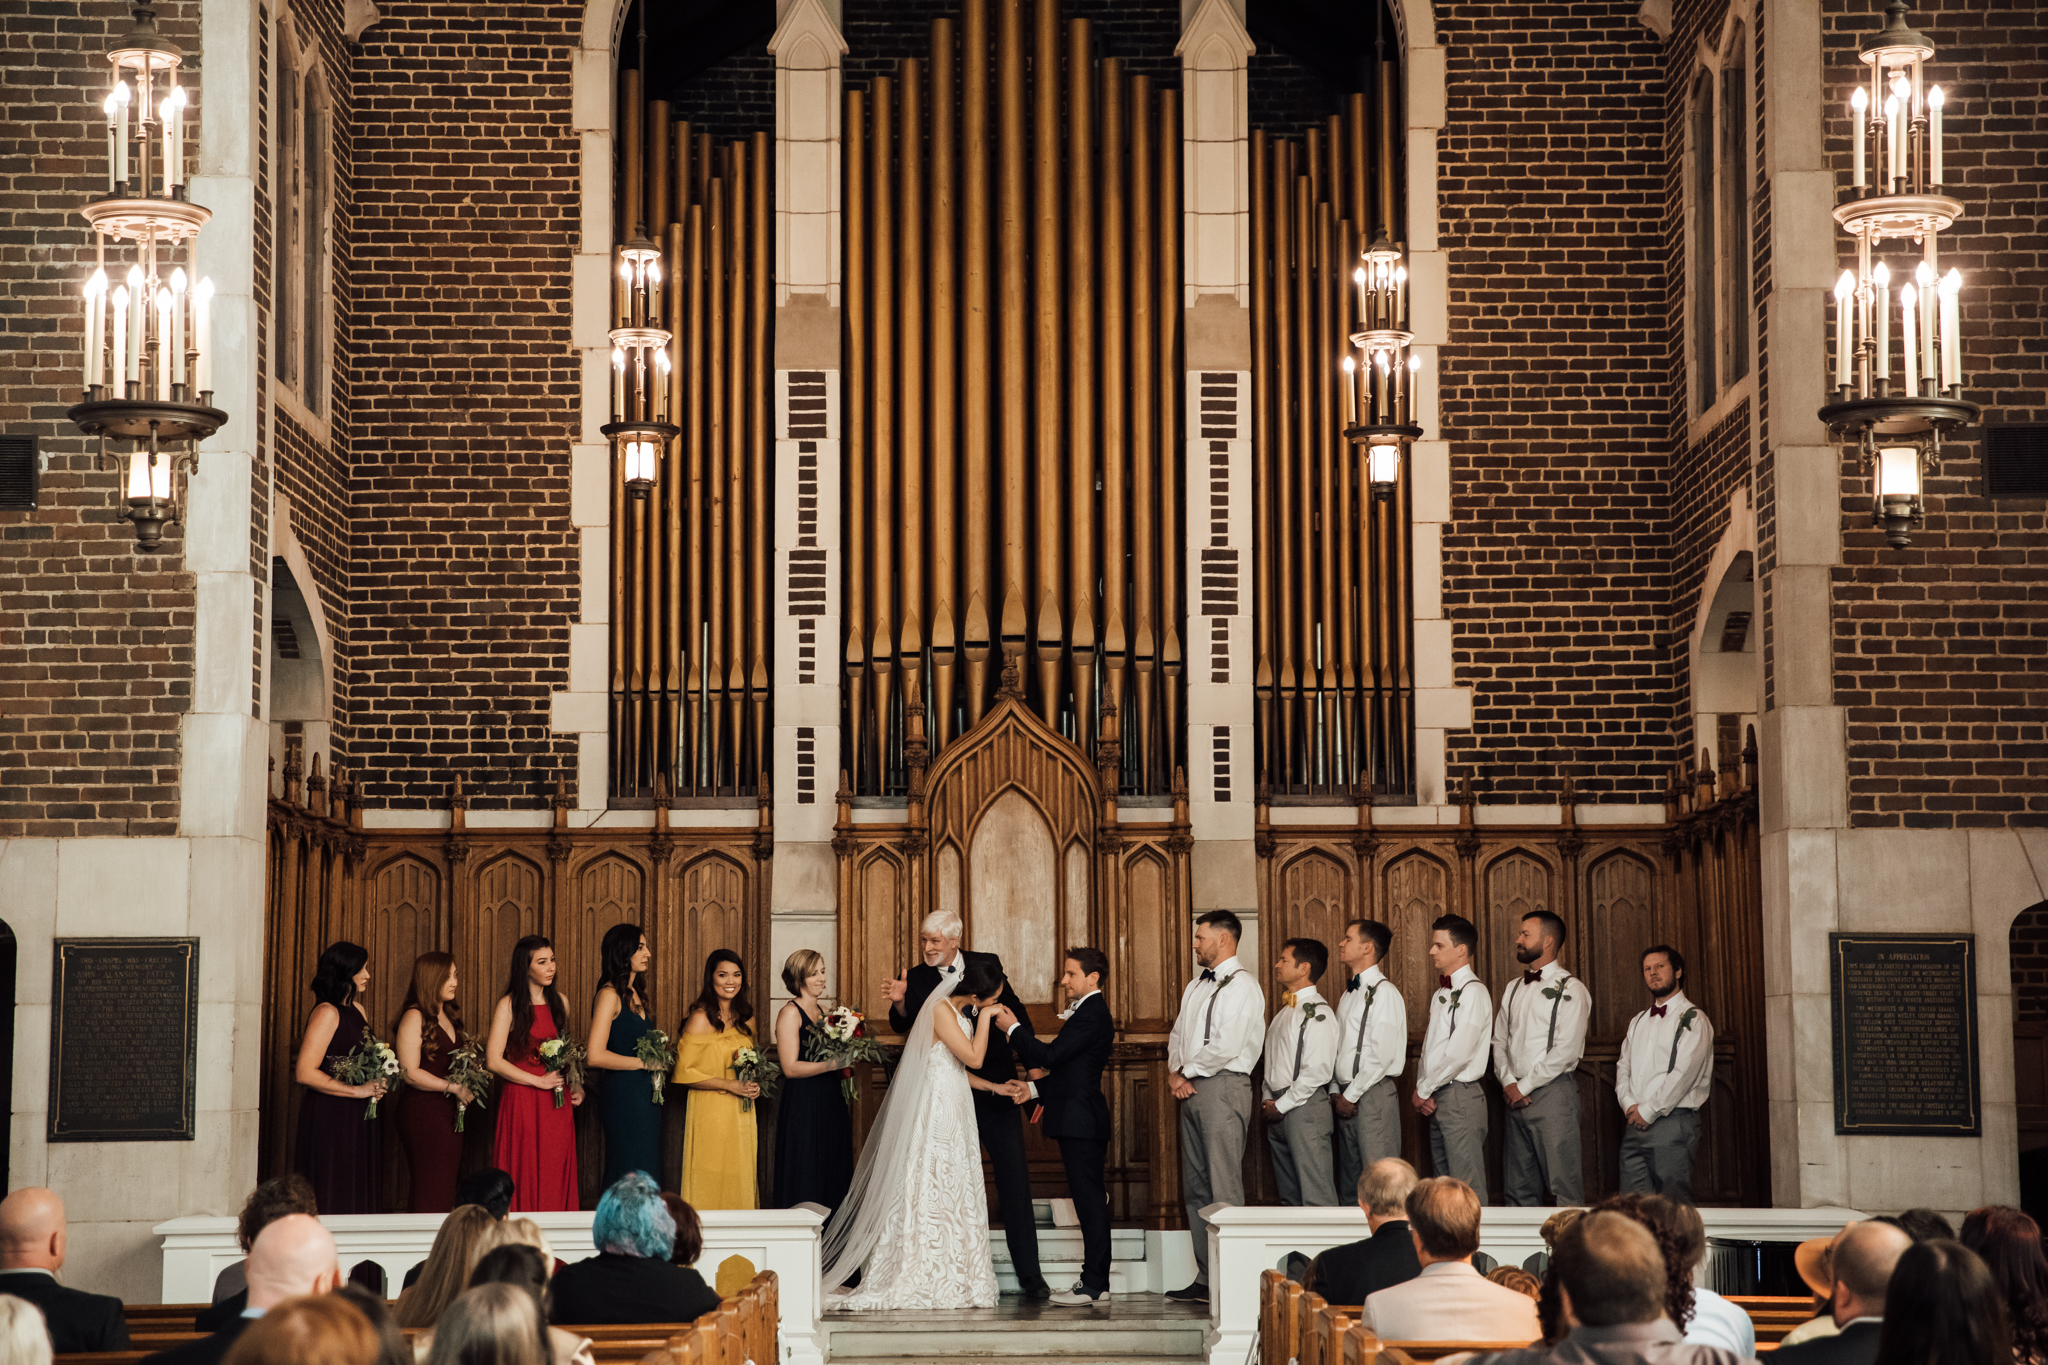 chattanooga-wedding-photographers-thewarmtharoundyou-waterhouse-pavilion-patten-chapel-wedding-sam-dusty (80 of 269).jpg